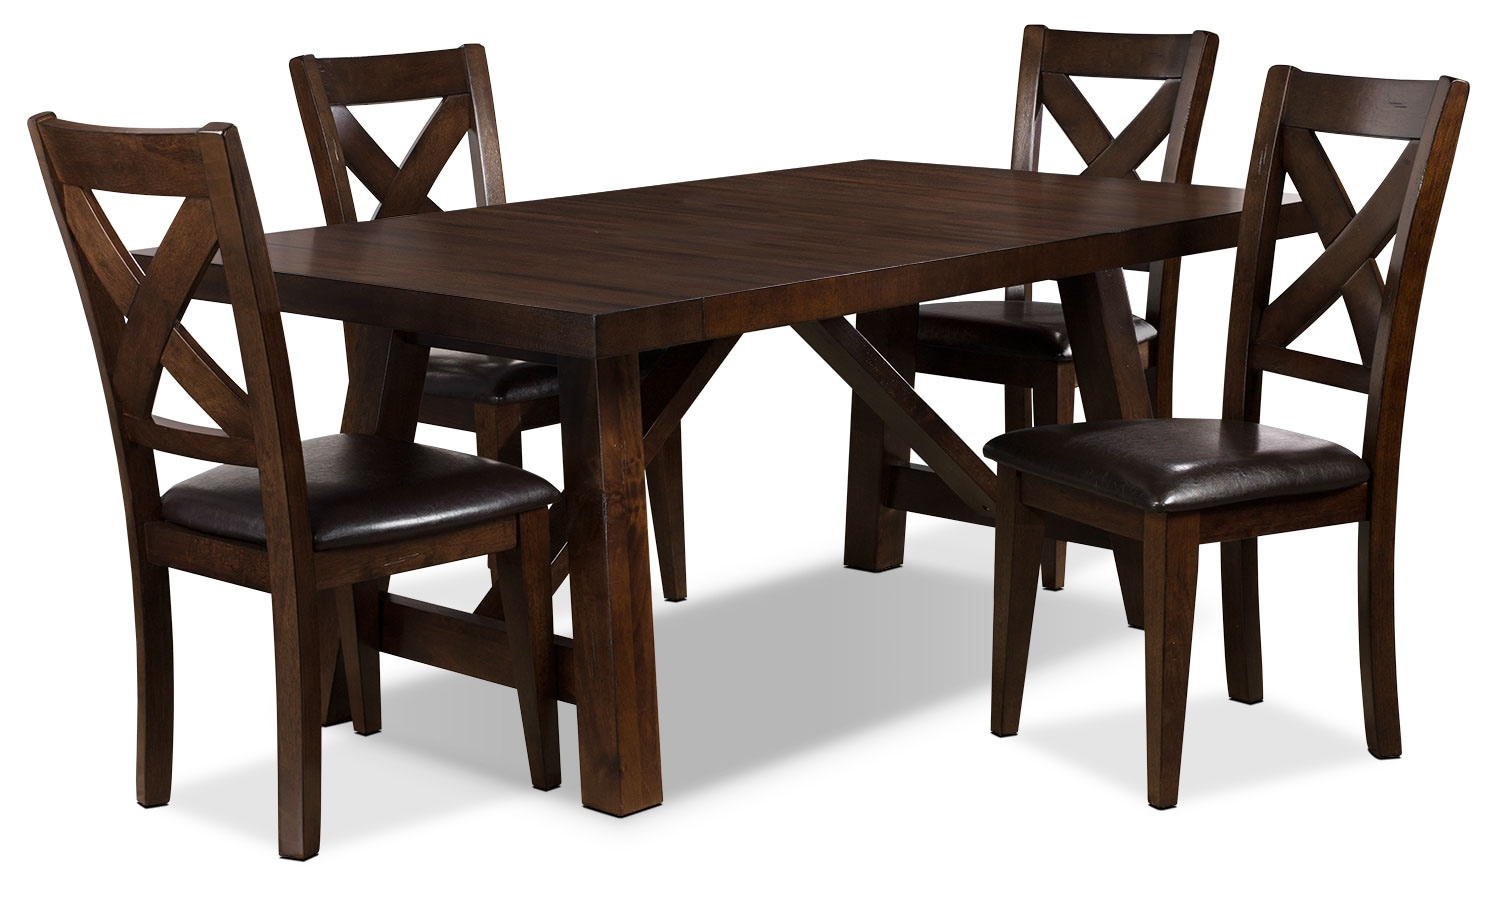 Adara 5-Piece Dining Package w/ Cross-Back Chairs